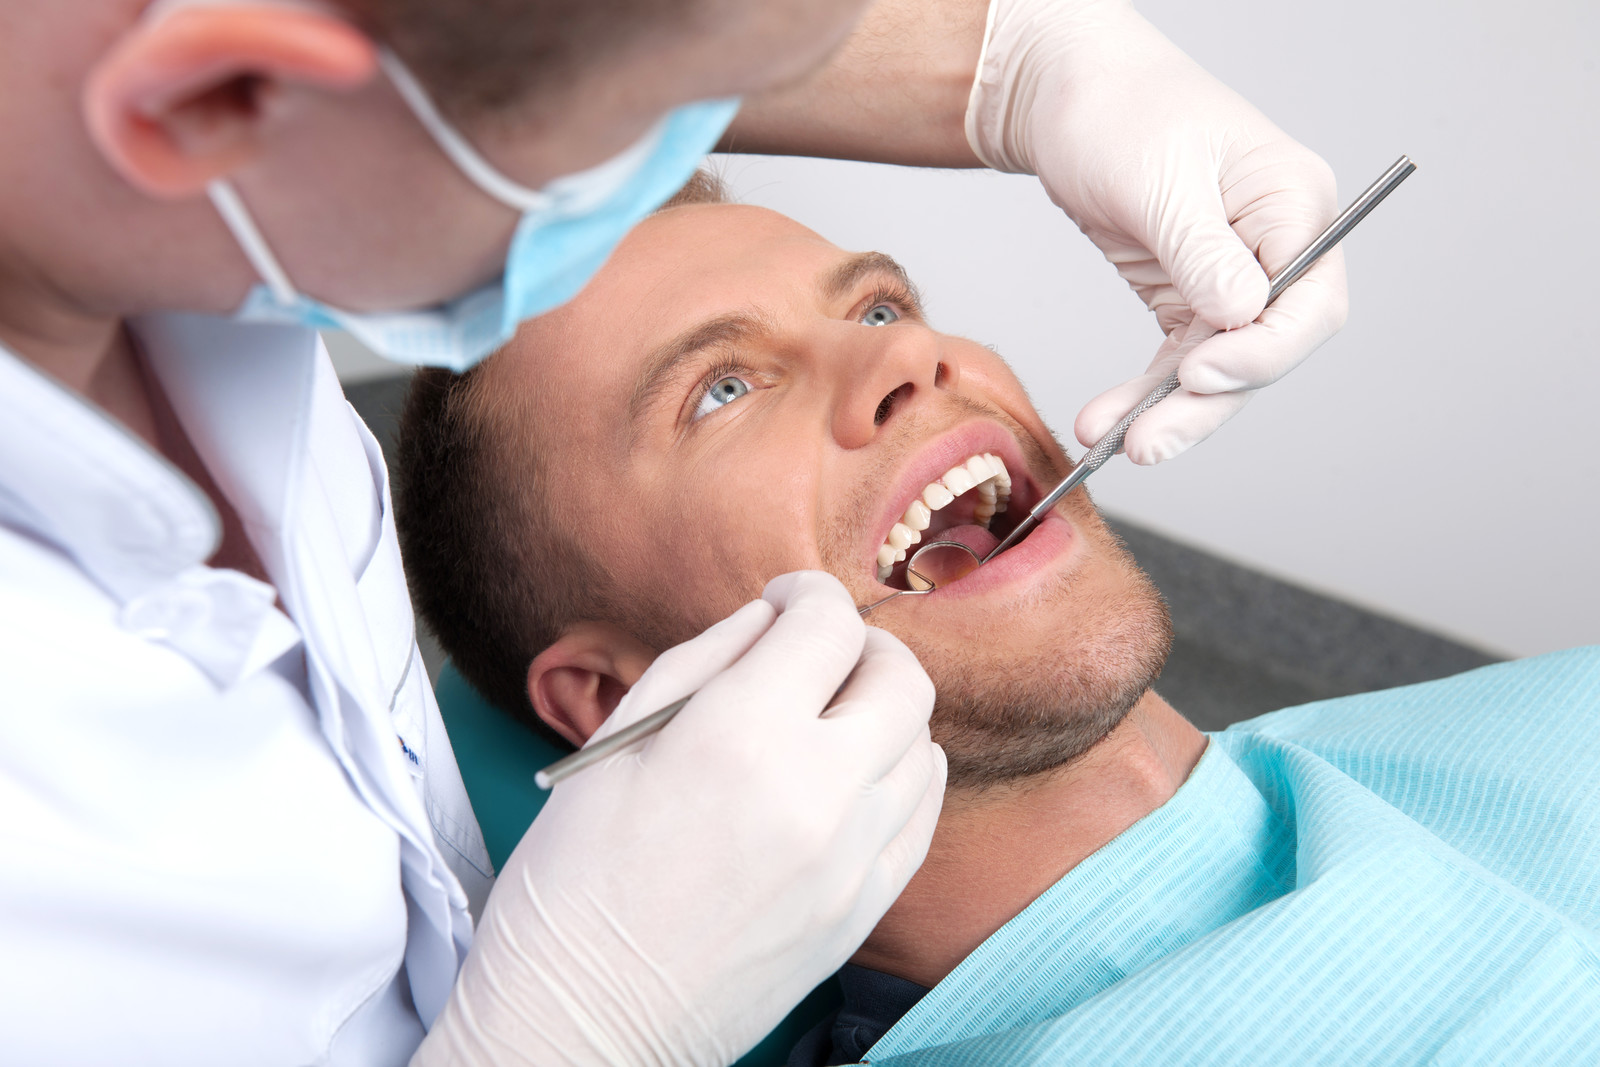 4 common dental problems to look out for as you age